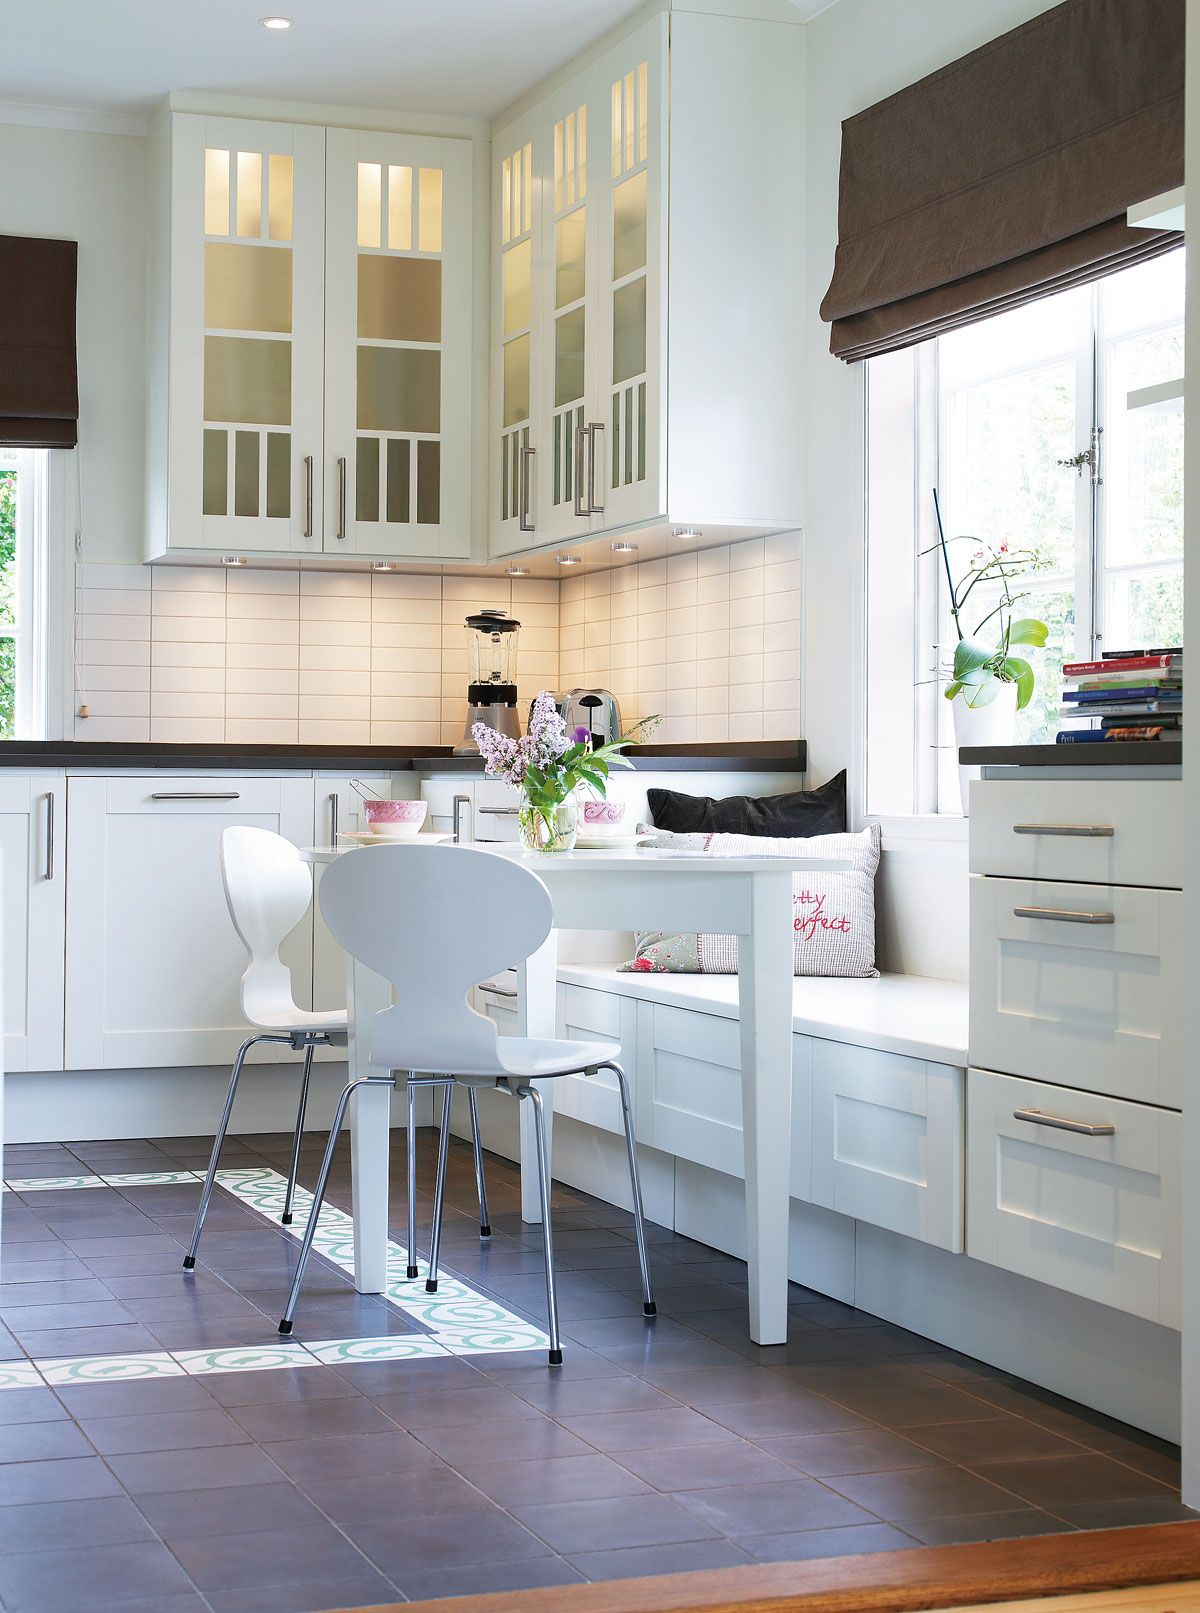 Tvis Keuken Leuk Zitje In De Keuken Keuken Home Decor Kitchen Must Haves